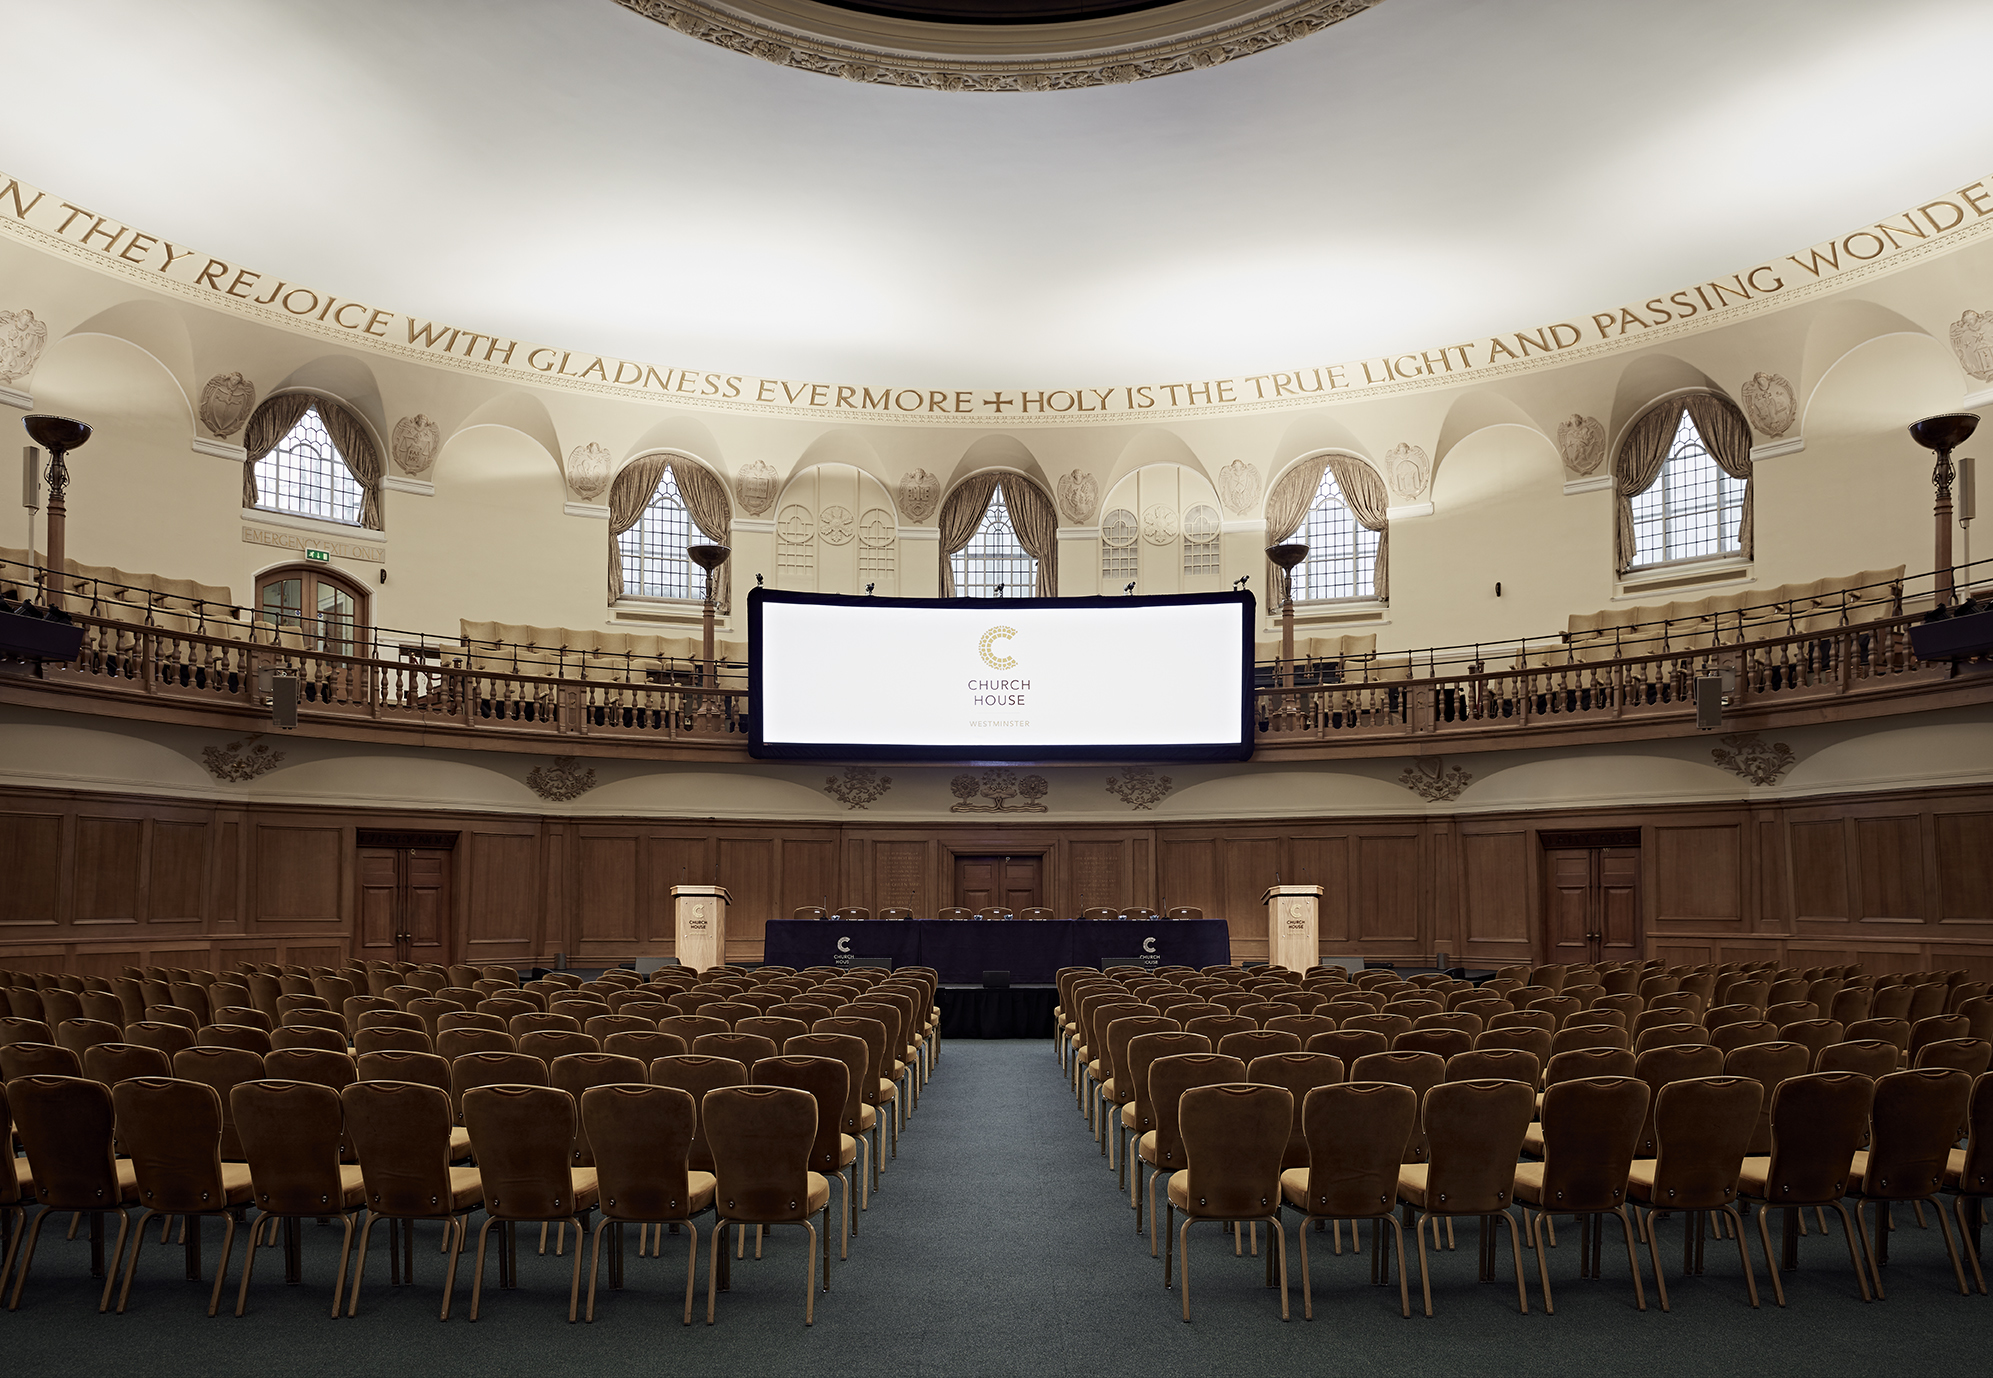 Hire Church House Westminster Assembly Hall Venuescanner